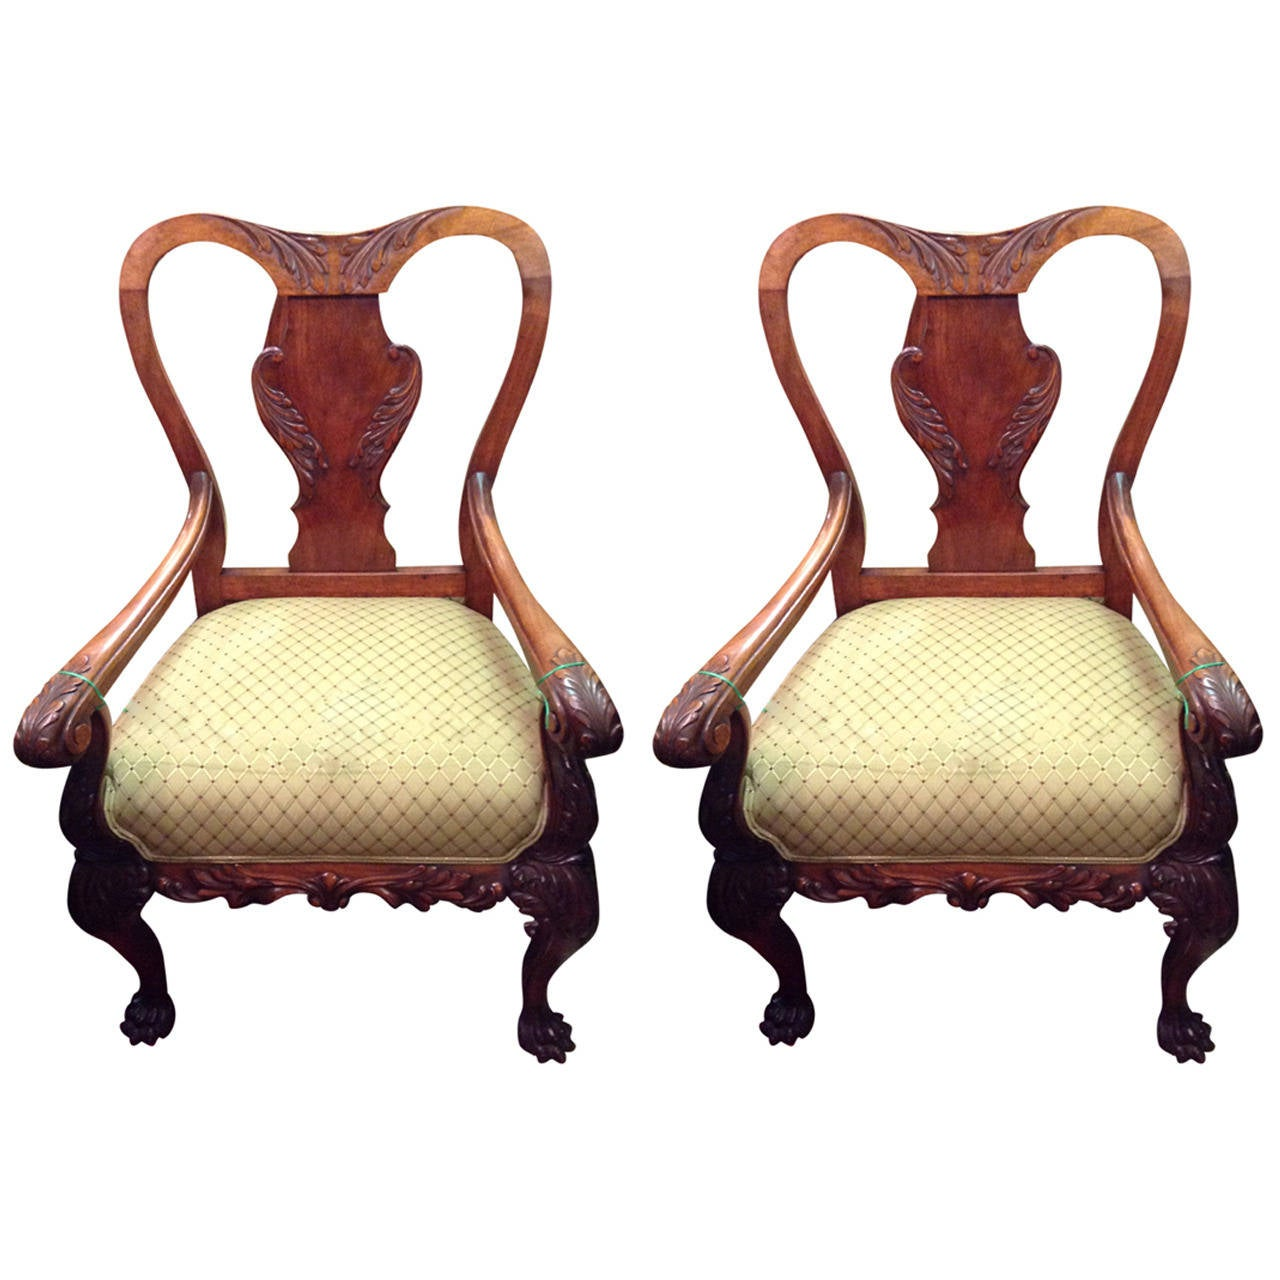 Chippendale Dining Room Chairs: 1724882_l.jpeg